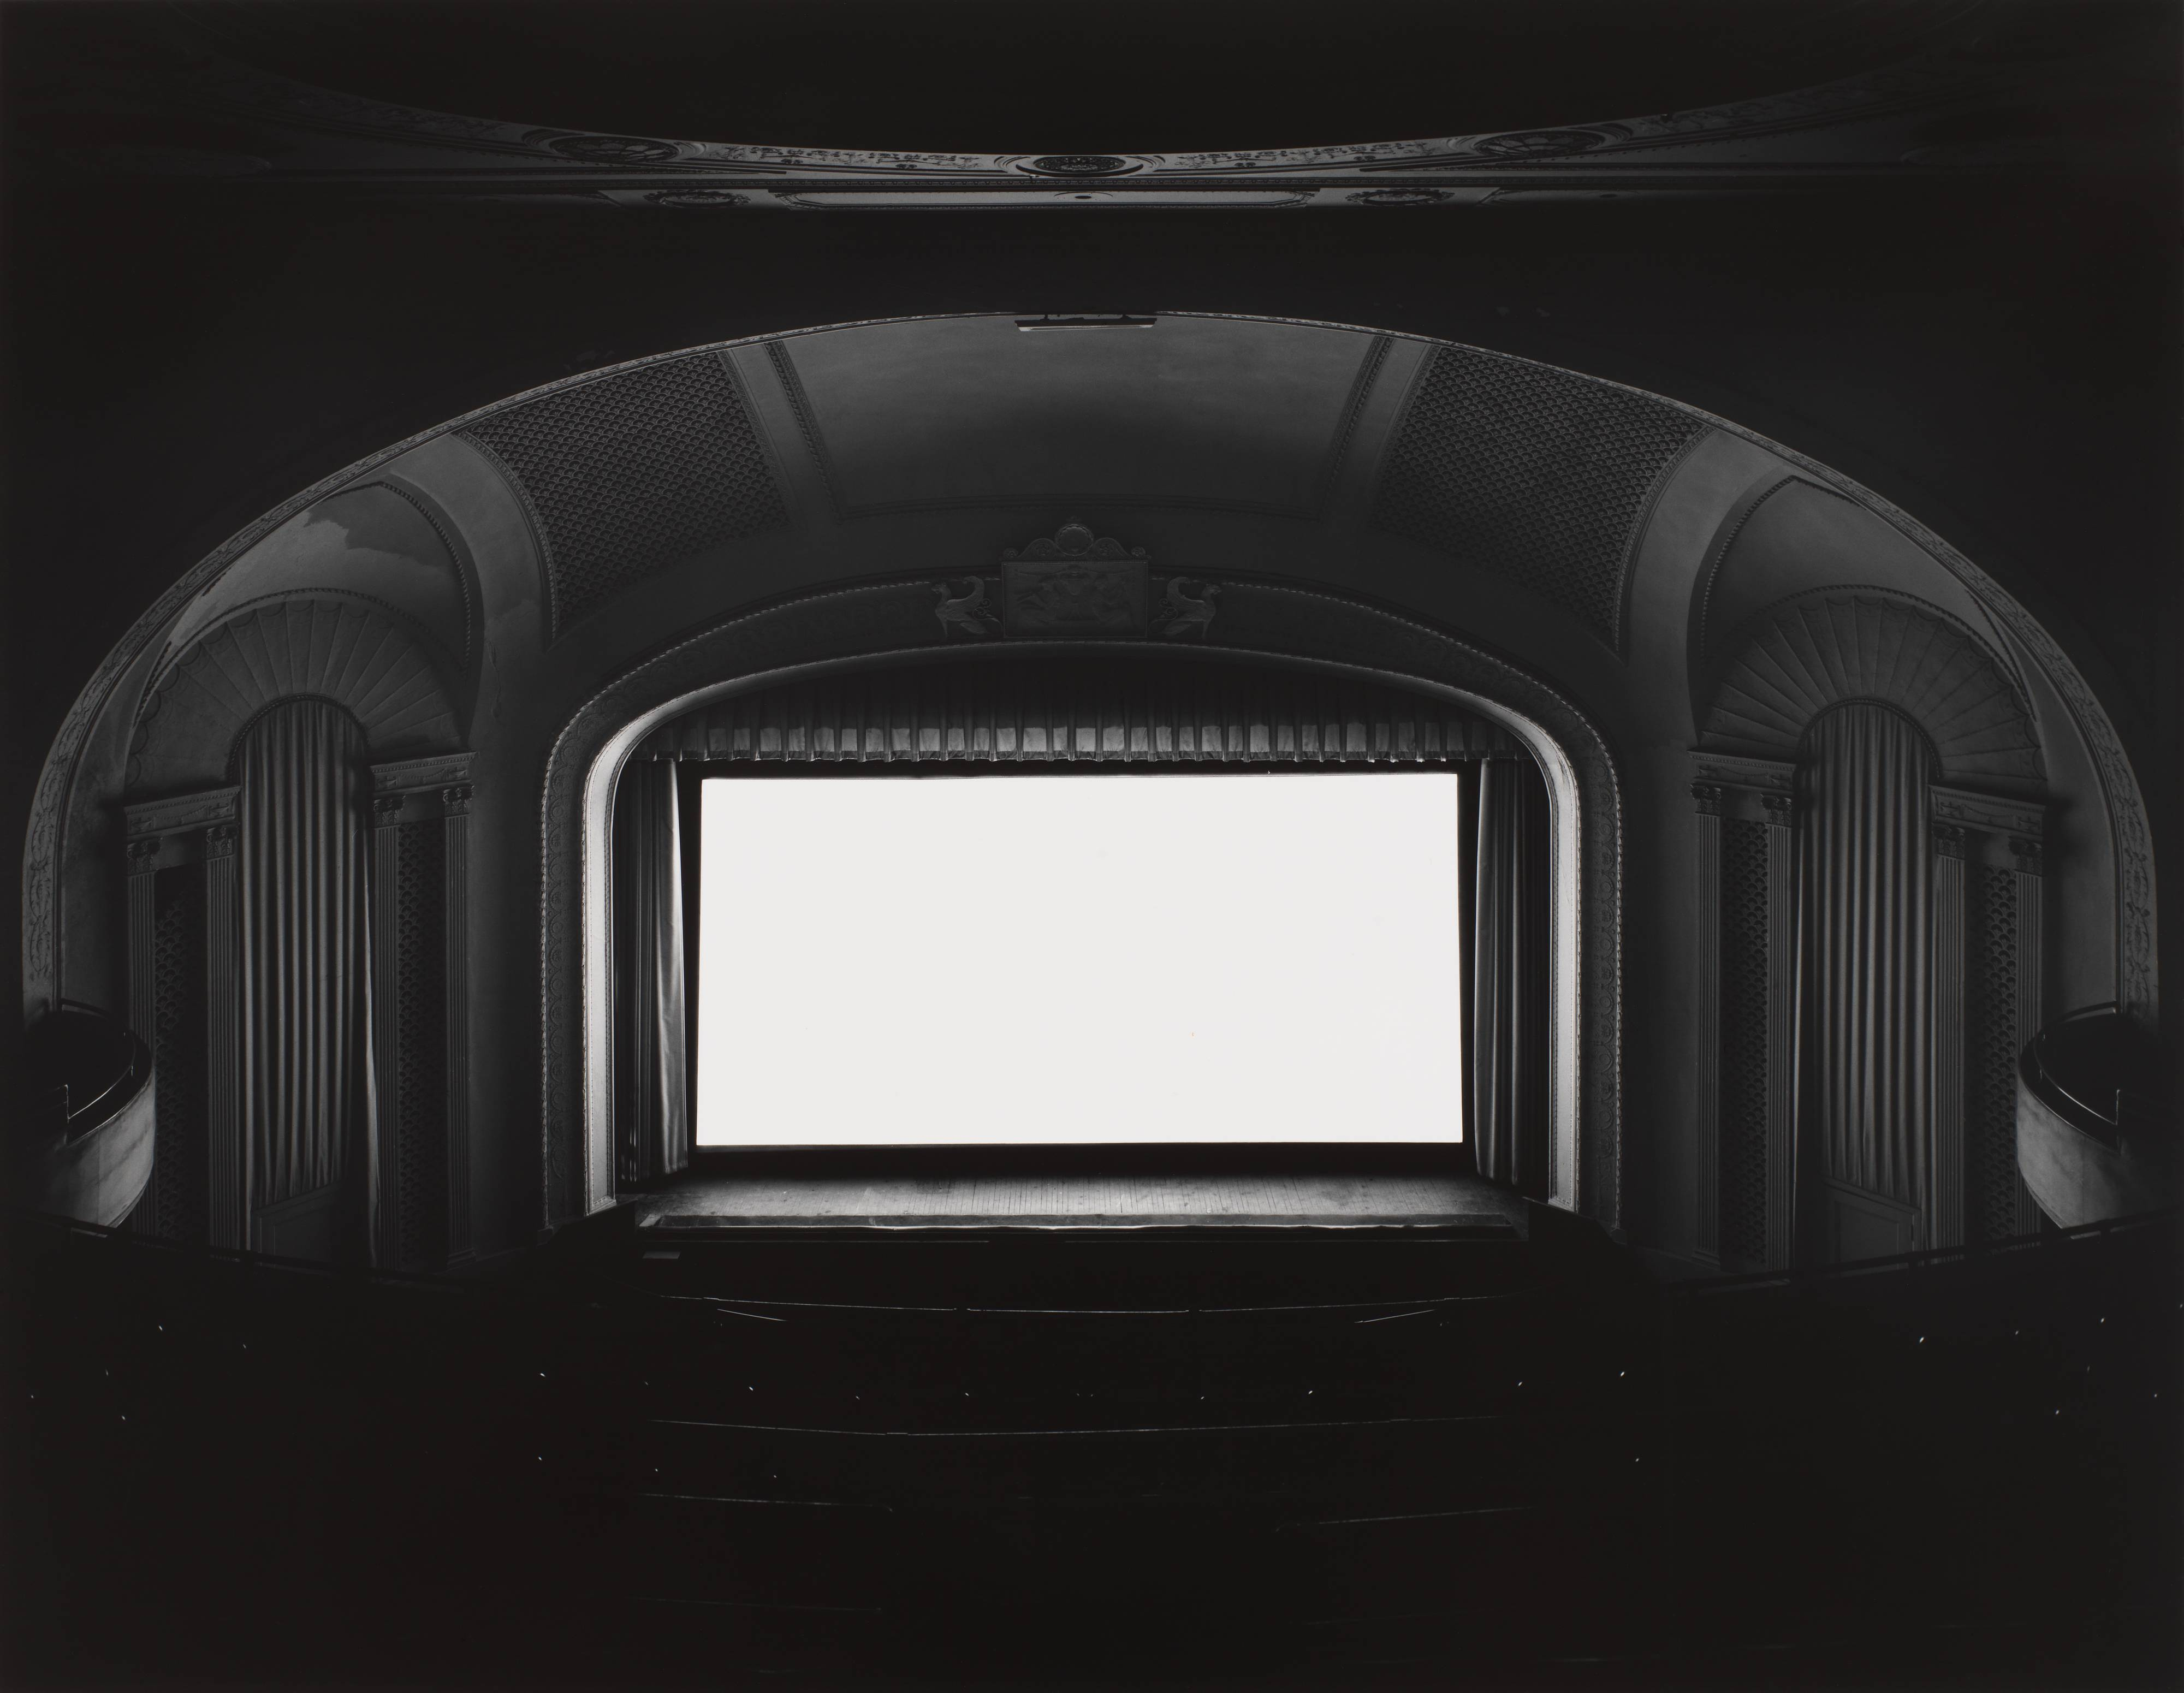 Hiroshi Sugimoto - Theaters - U.A. Playhouse, Great Neck, New York, 1978